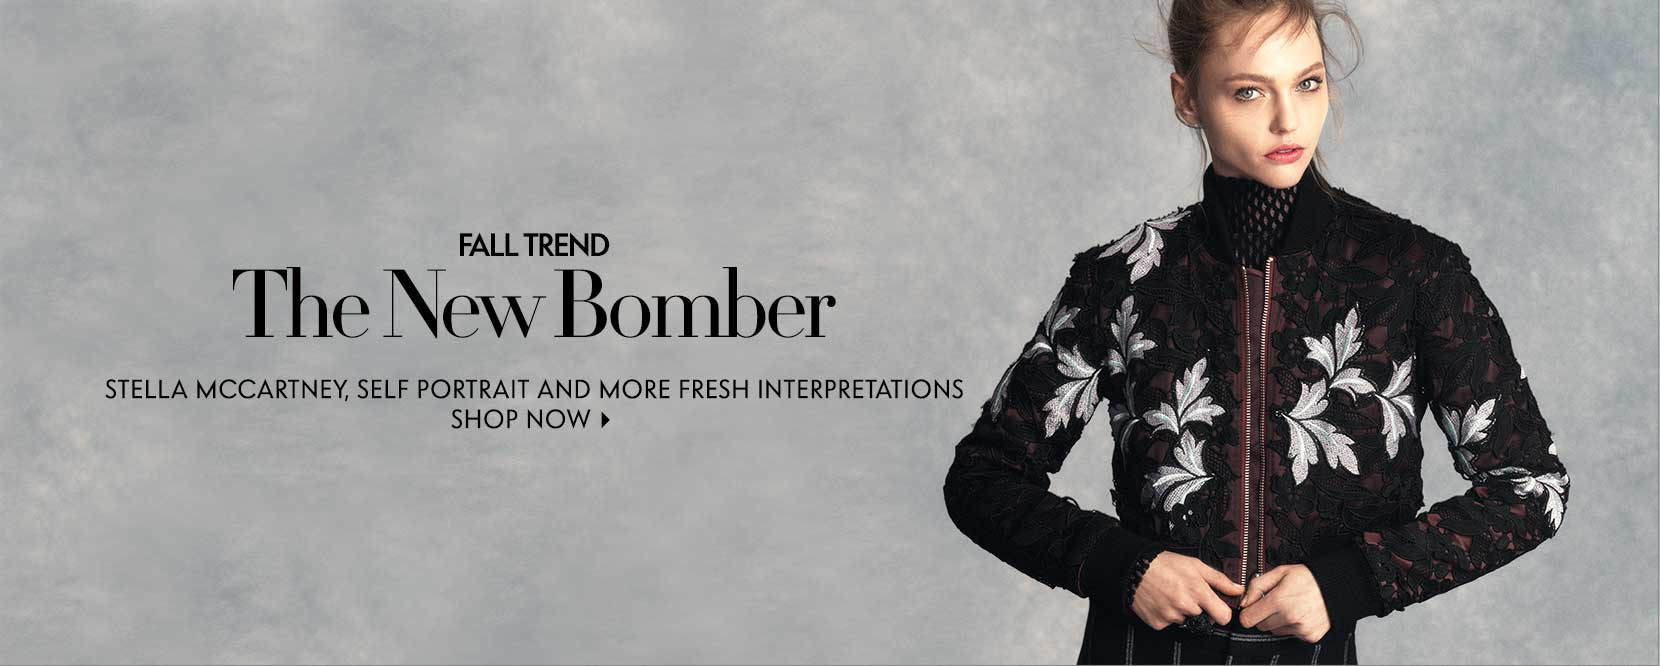 Fall trend New Bomber Stella Mccartney, Self Portrait and more fresh interpretations